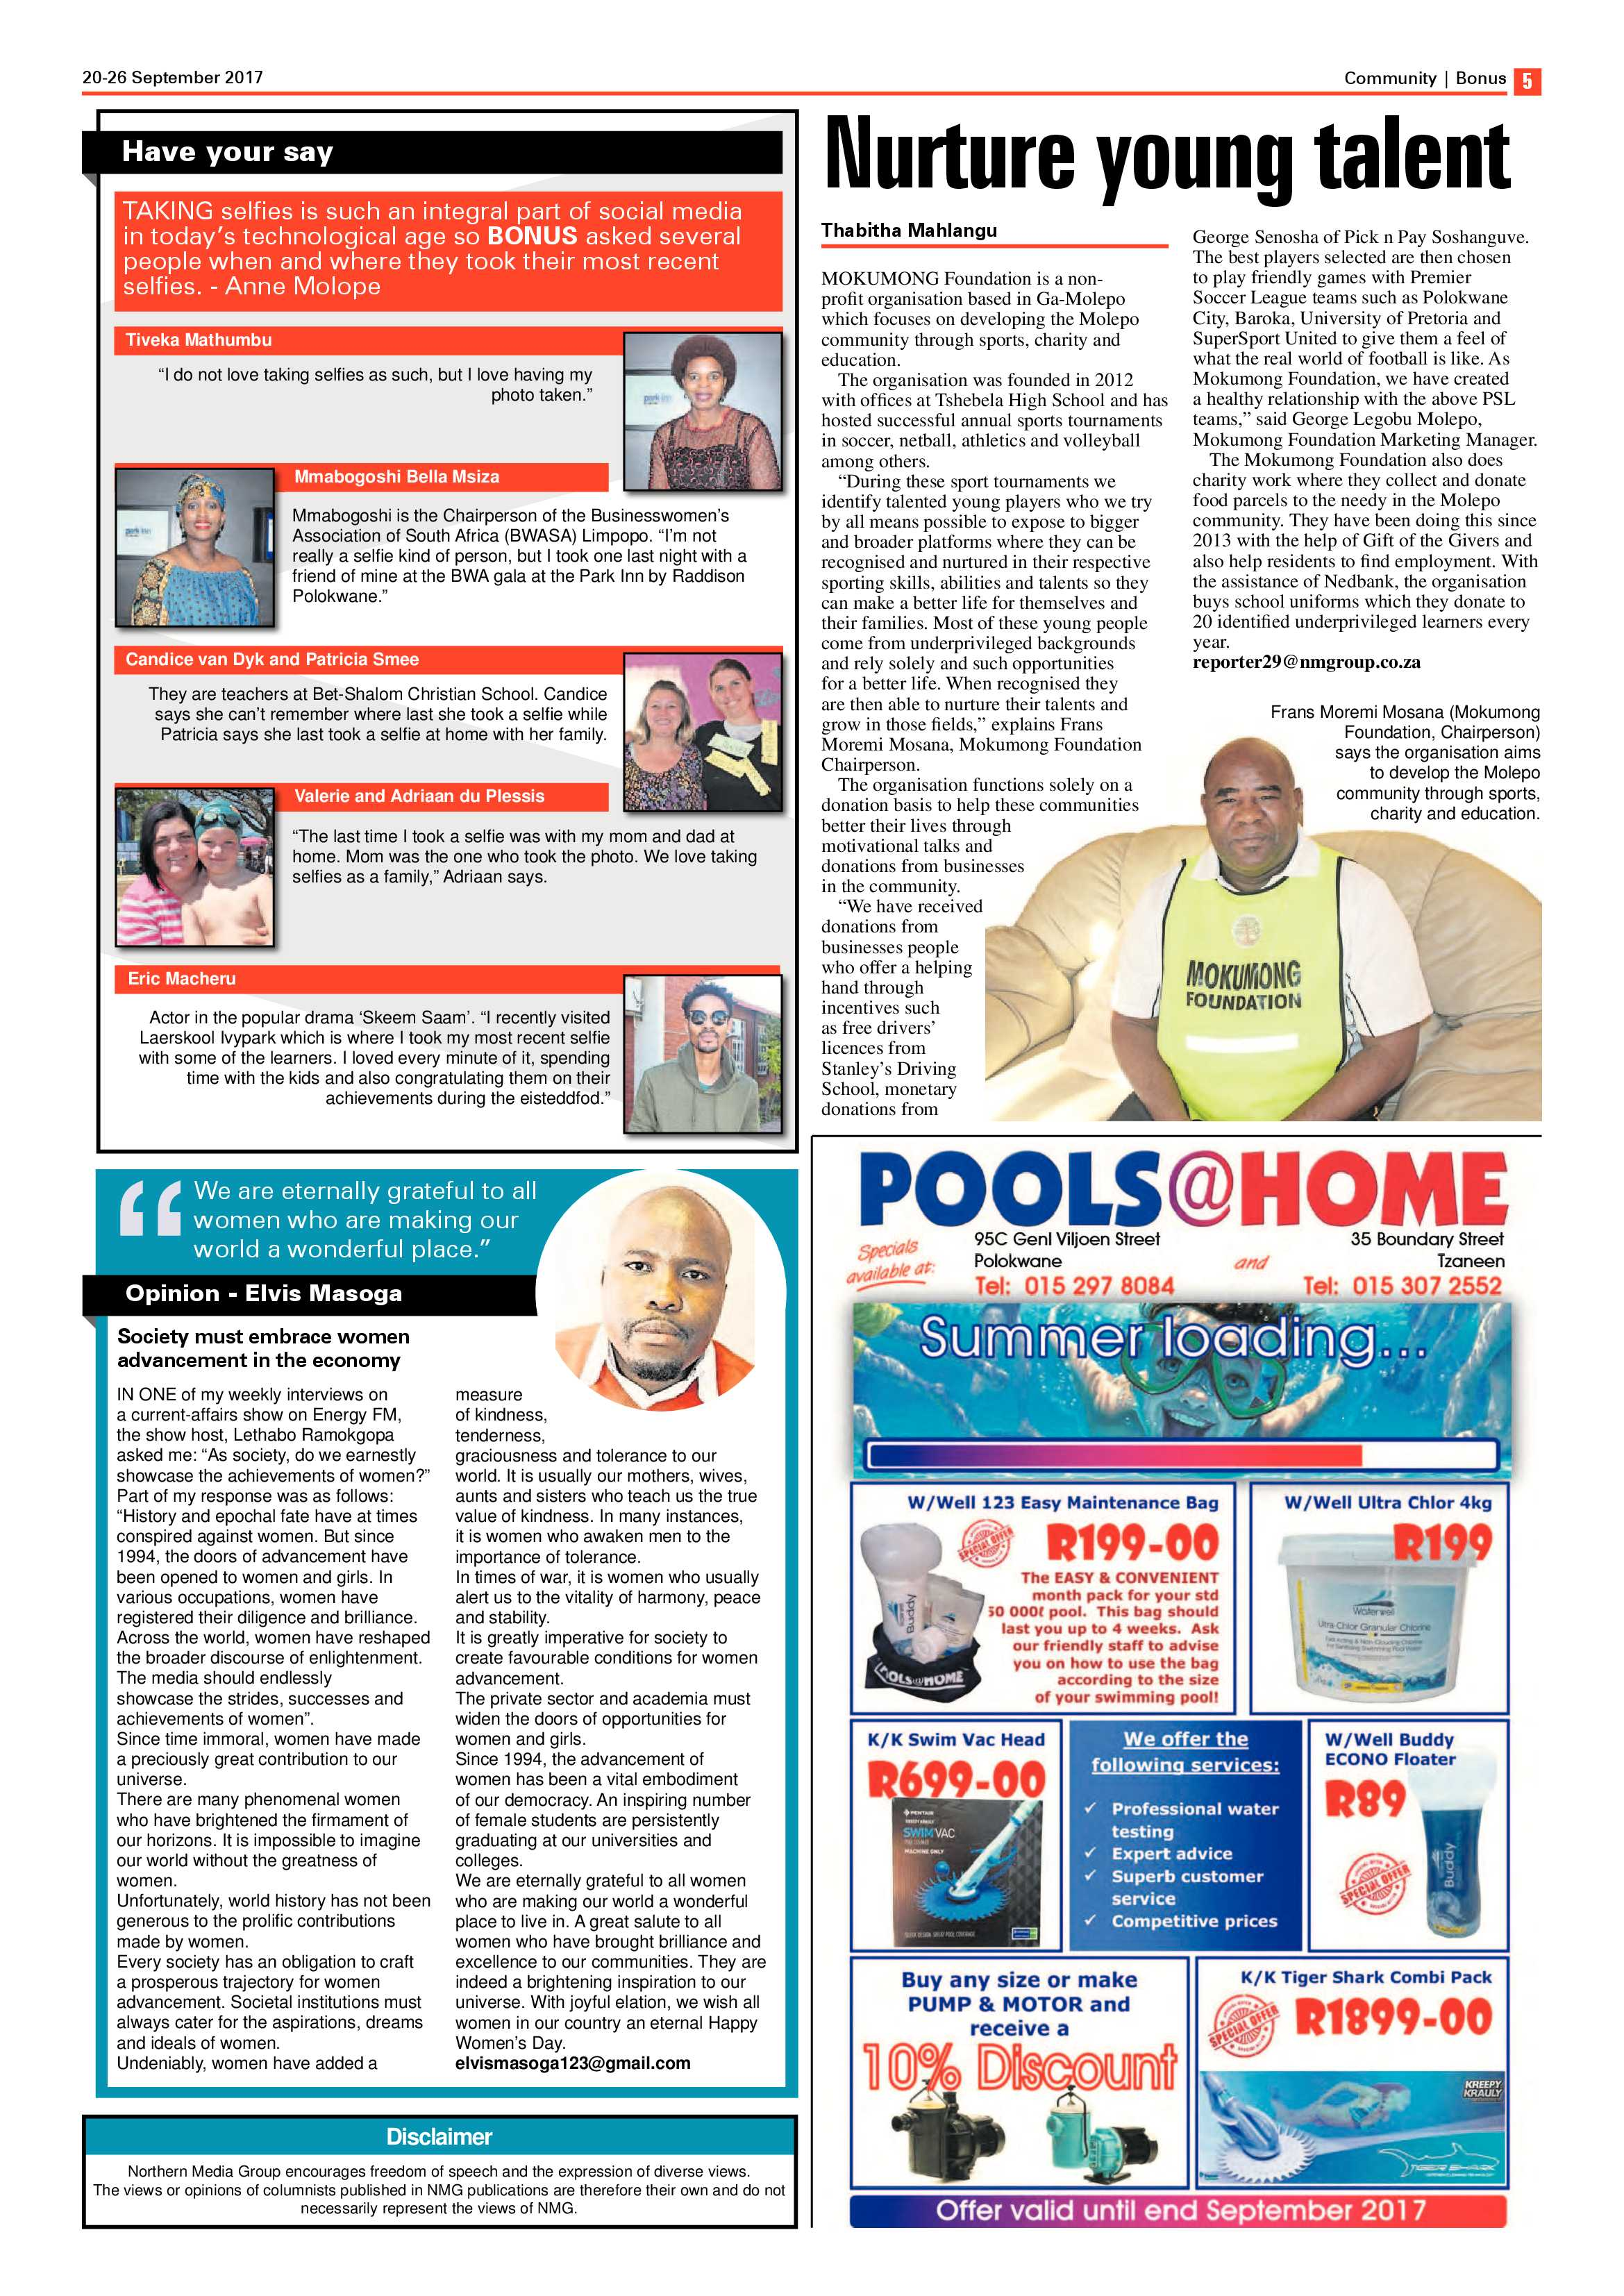 review-bonus-20-september-2017-epapers-page-5